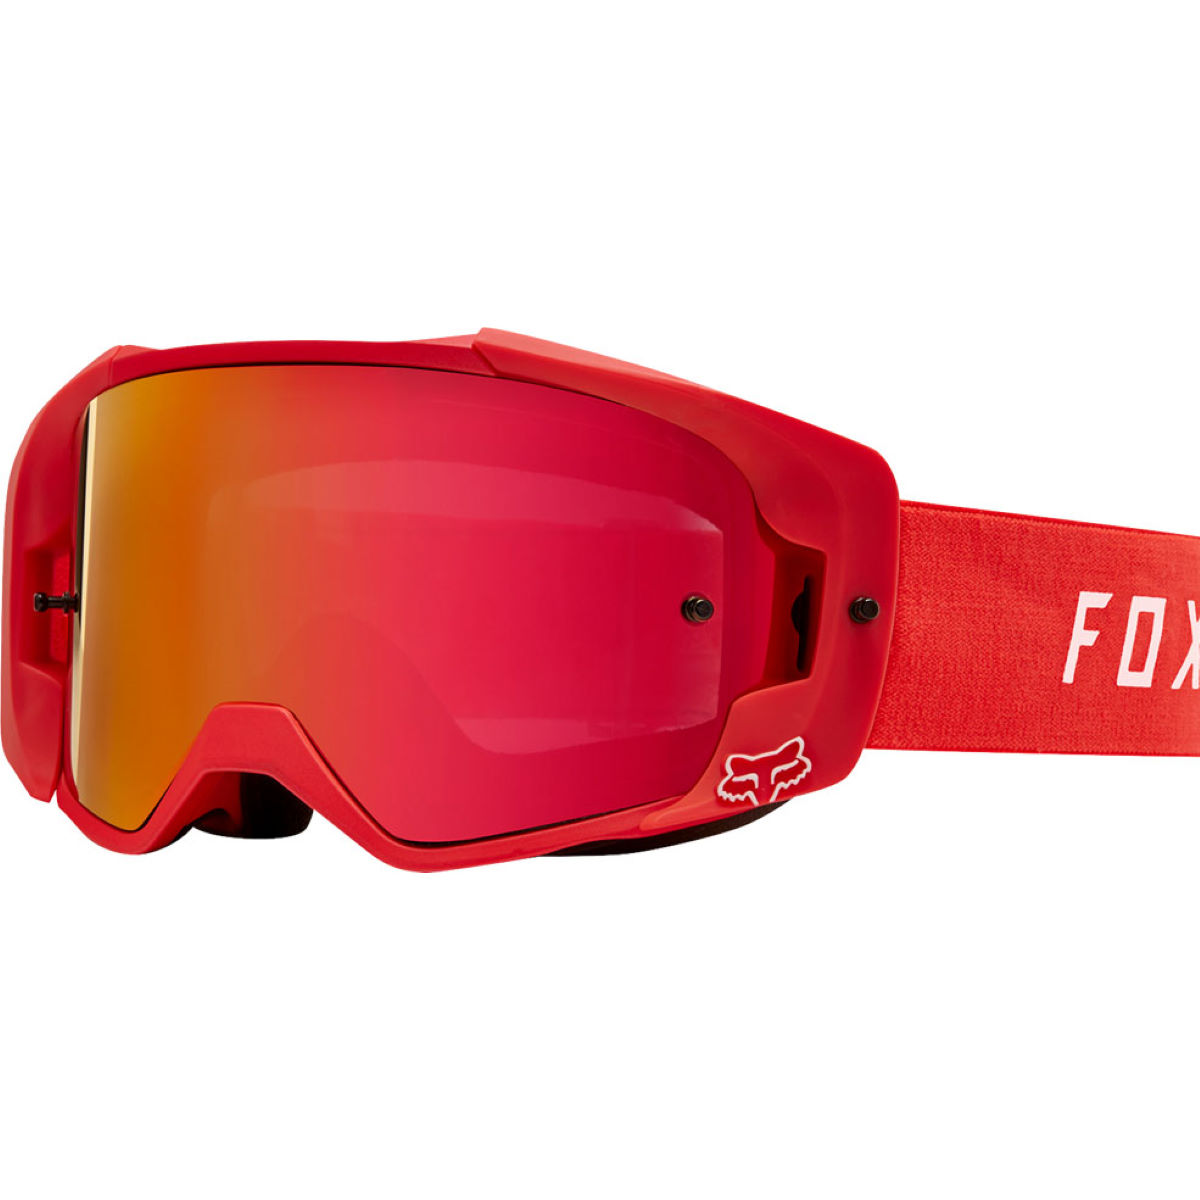 Fox Racing Vue Goggle (Red) - Máscaras de ciclismo